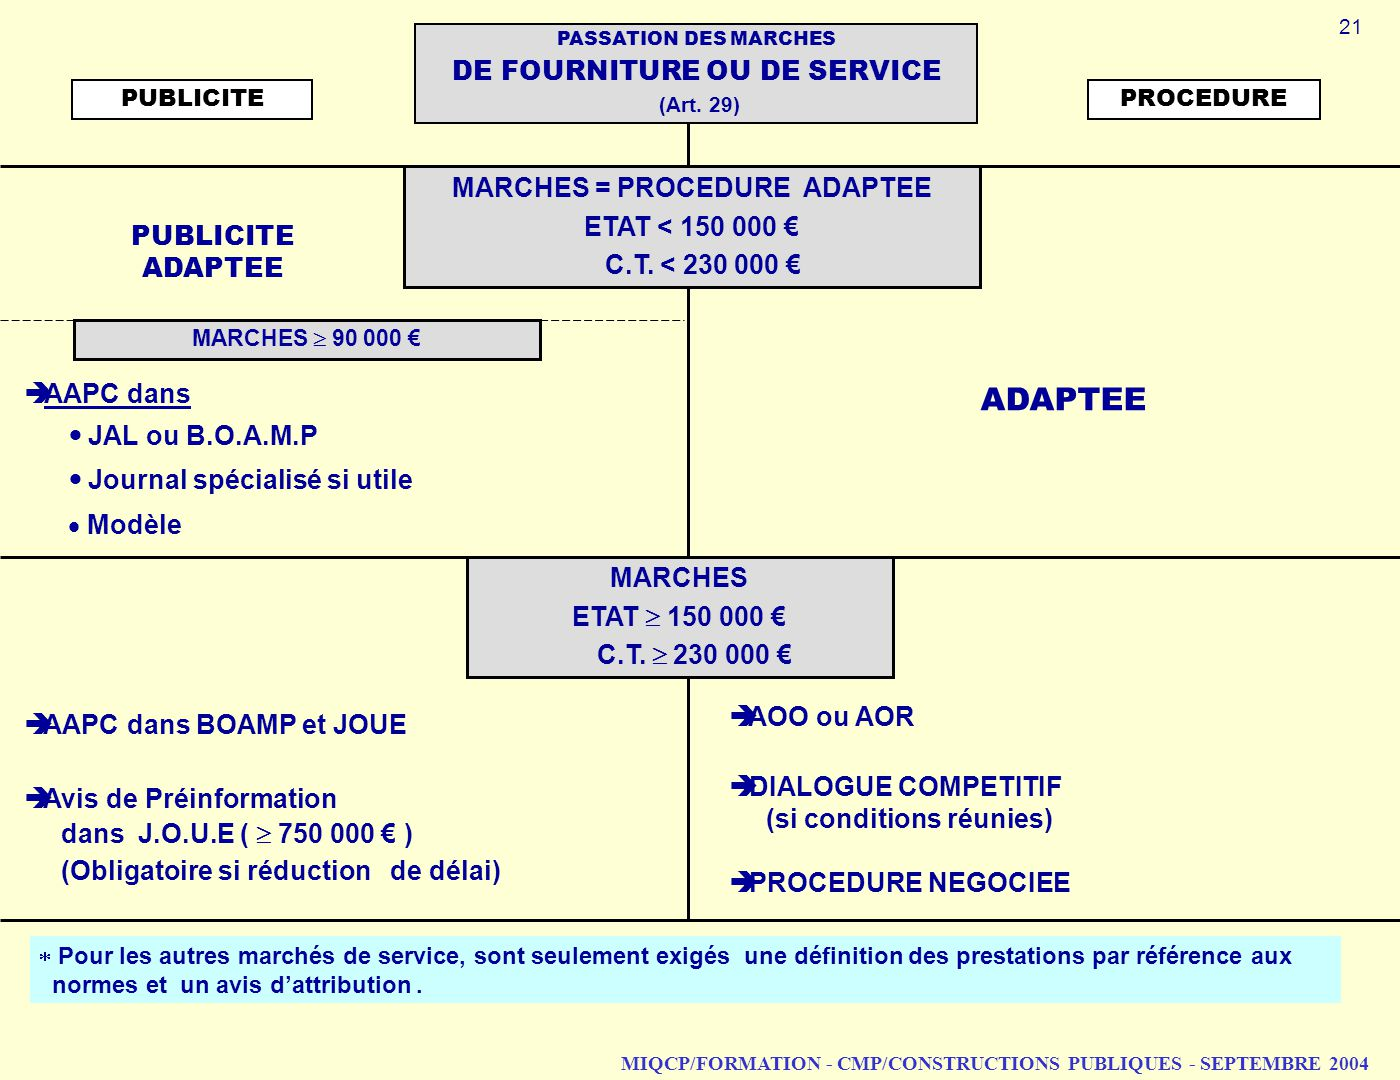 ADAPTEE DE FOURNITURE OU DE SERVICE MARCHES = PROCEDURE ADAPTEE